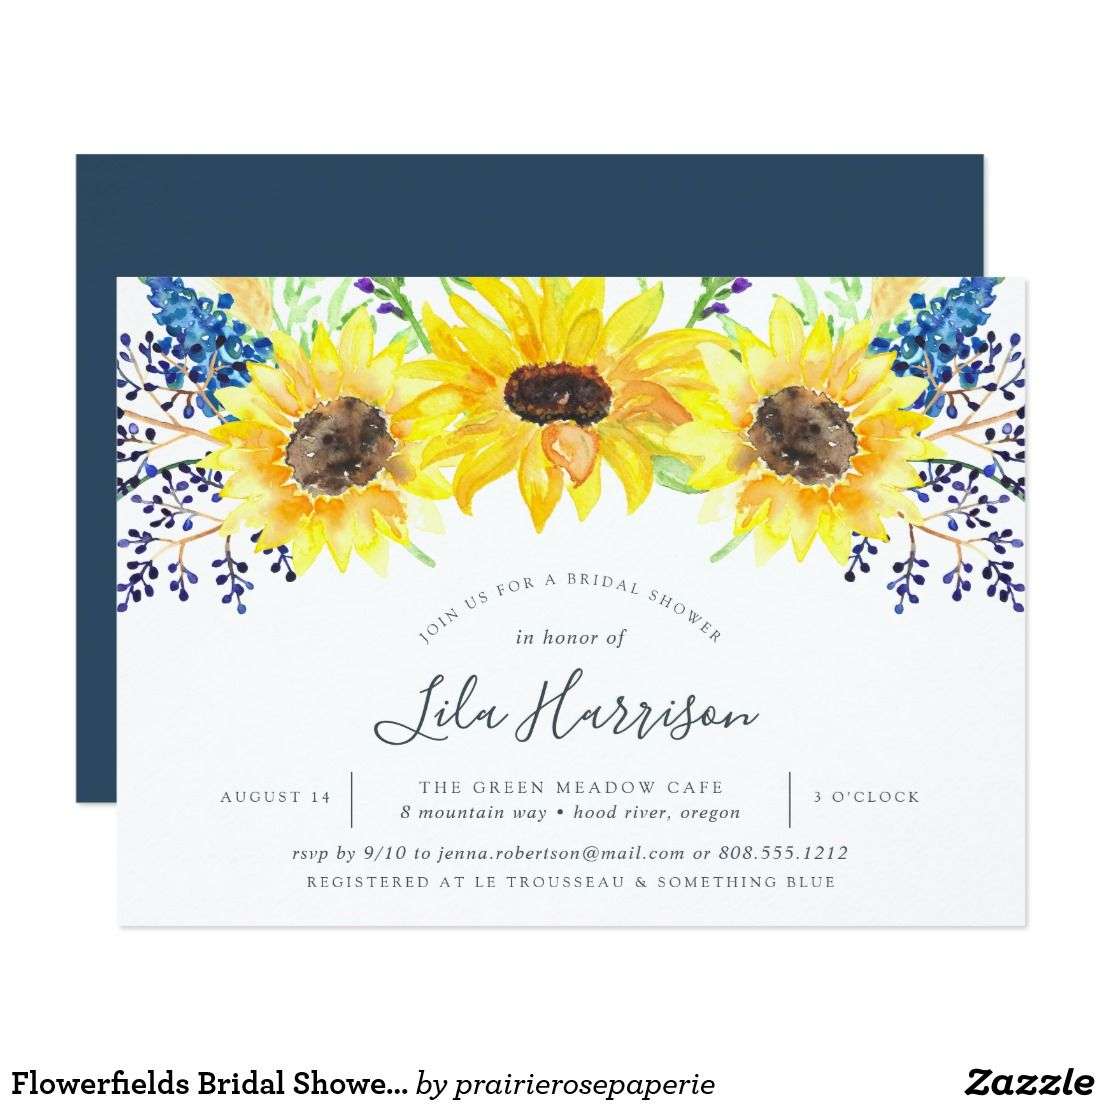 647bd2b385e6 Flowerfields Bridal Shower Invitation Country chic floral bridal shower  invitation features a top border of watercolor sunflowers